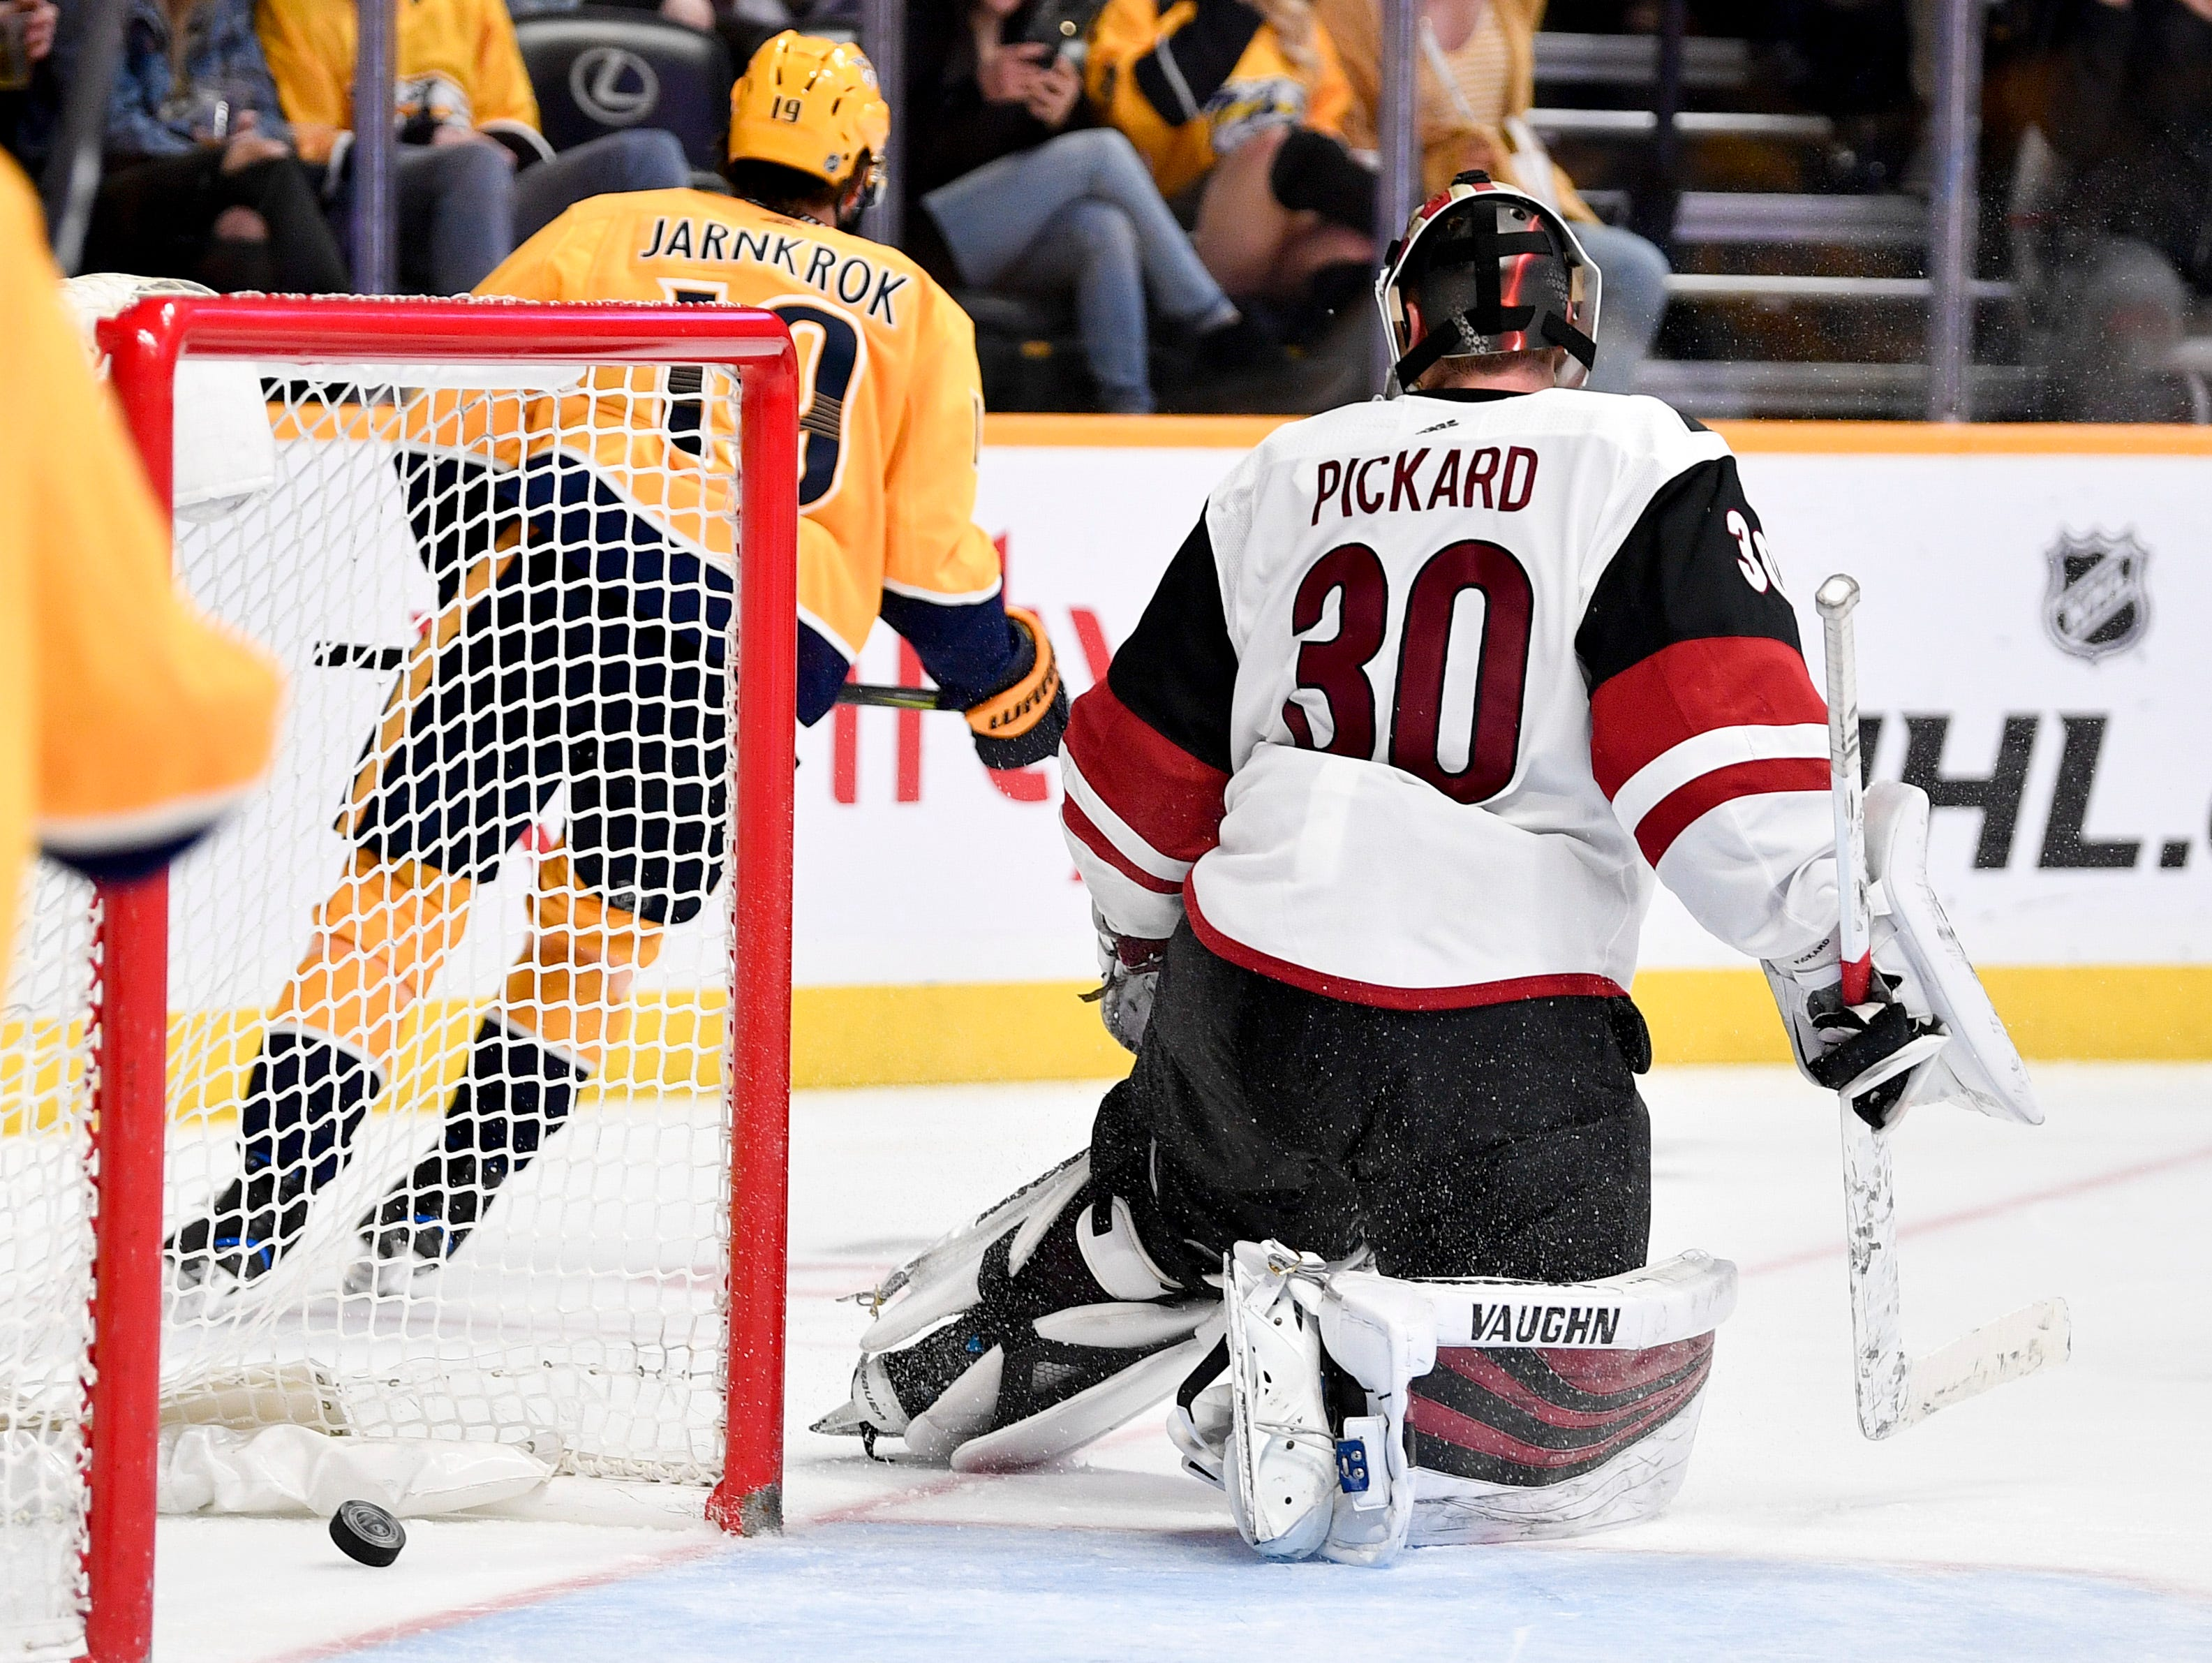 Nashville Predators center Calle Jarnkrok (19) scores past Arizona Coyotes goaltender Calvin Pickard (30) during the third period at Bridgestone Arena in Nashville, Tenn., Tuesday, Feb. 5, 2019.